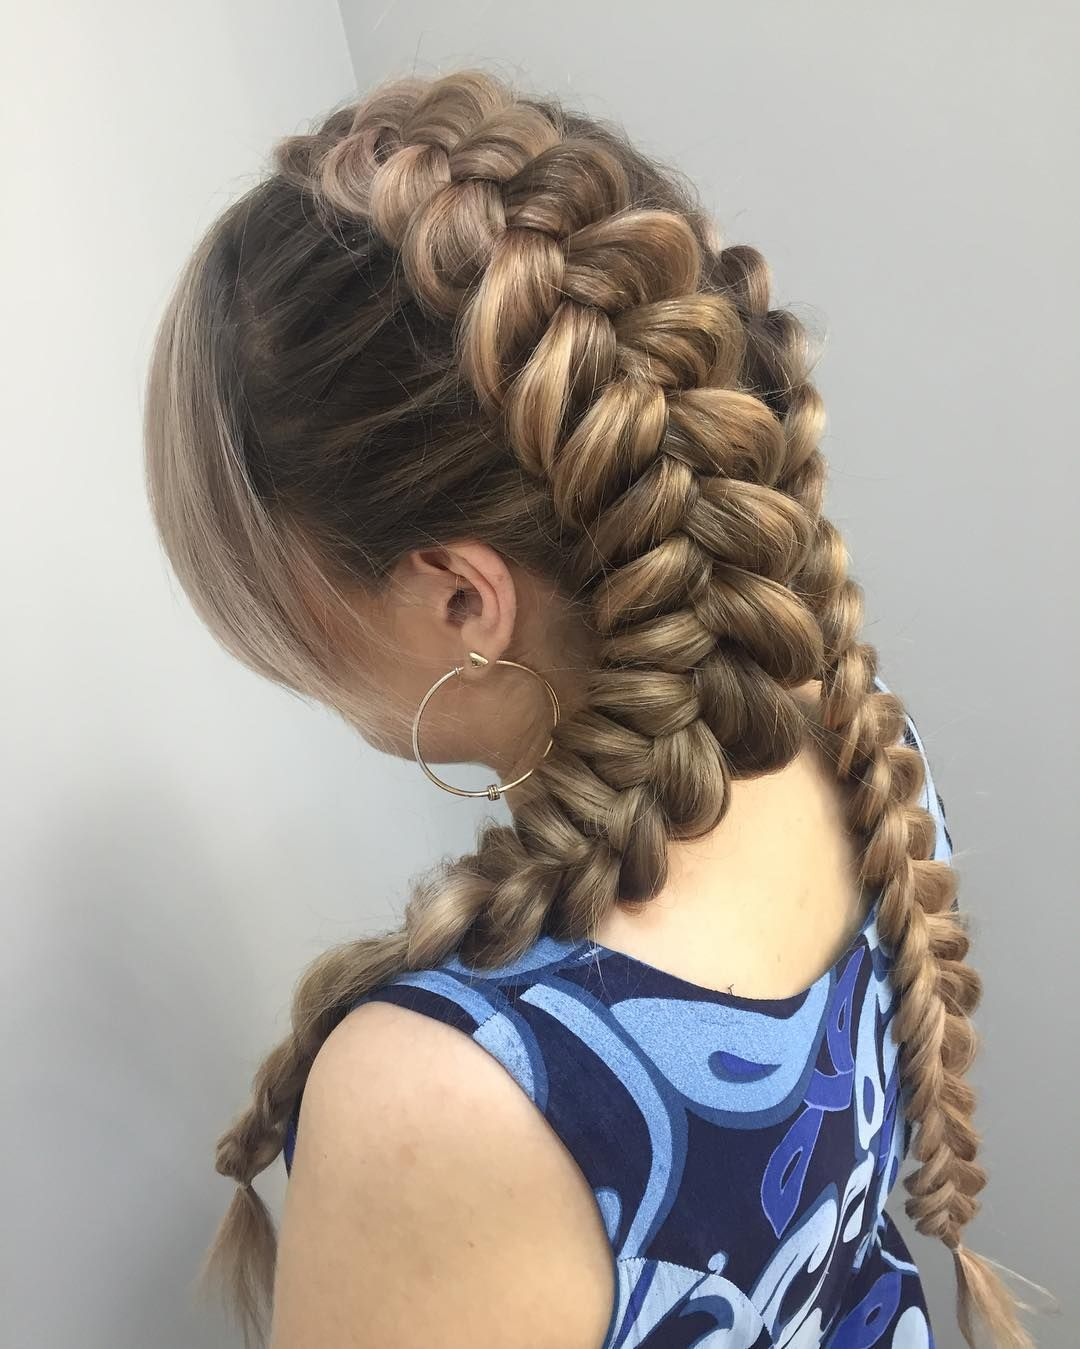 25 cool pigtails hairstyles — from dutch and french braid pigtails